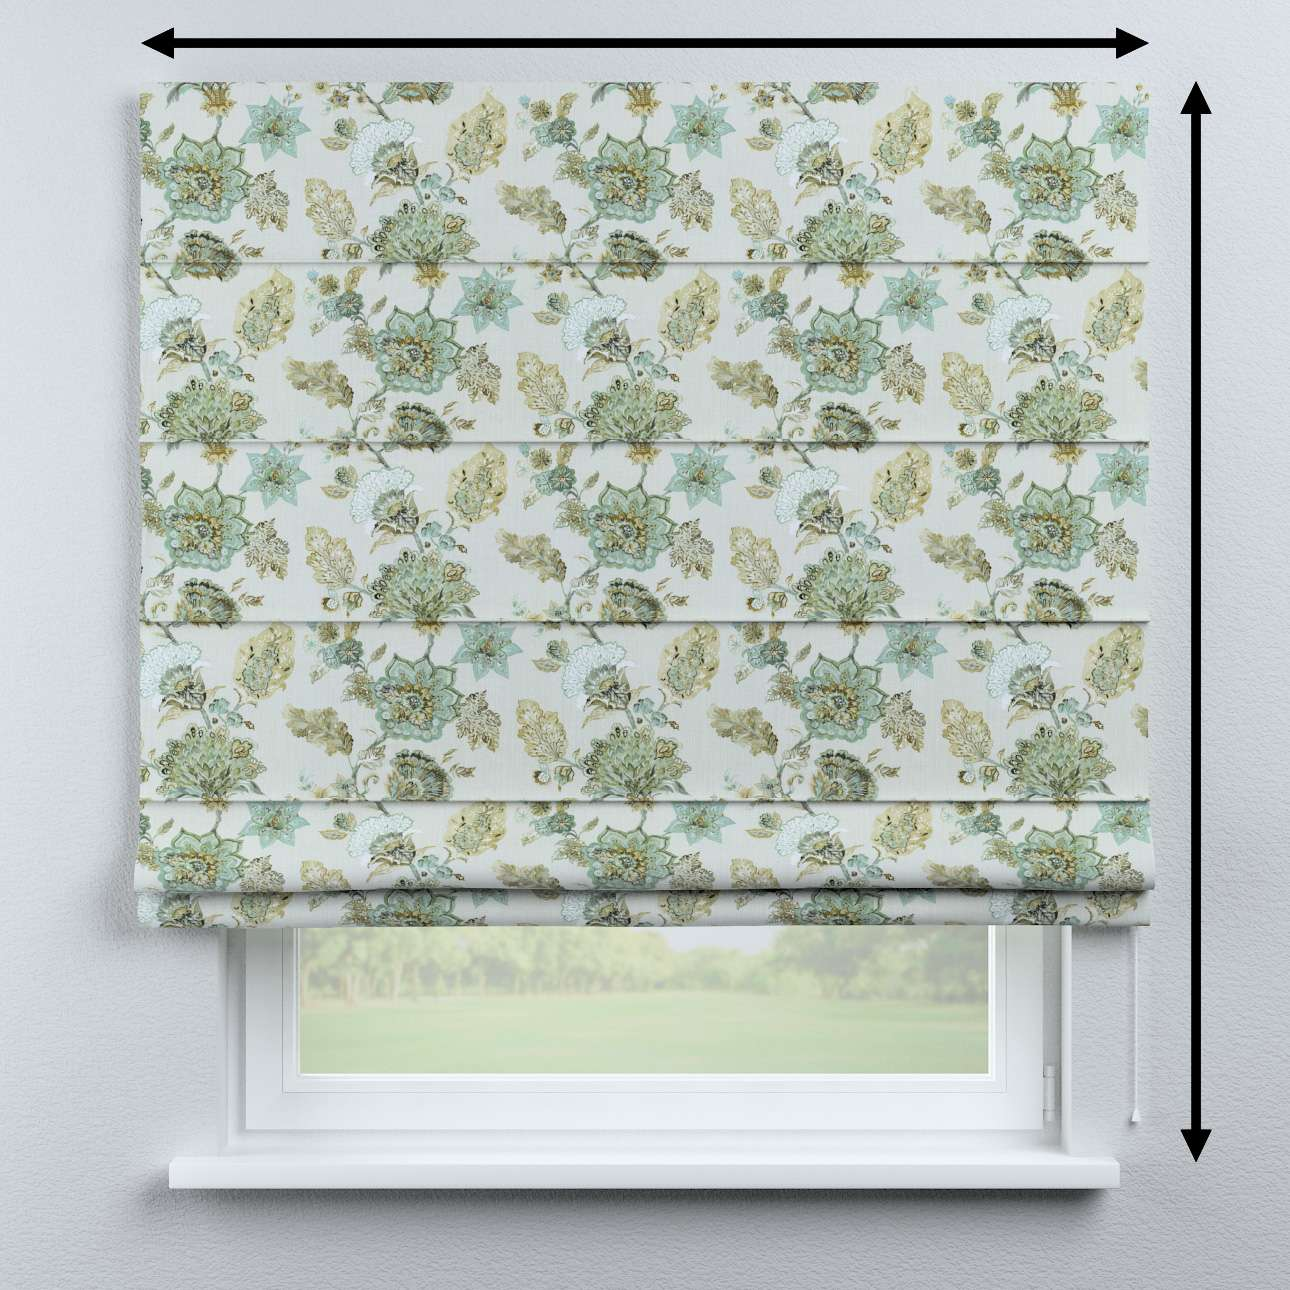 Capri roman blind in collection Flowers, fabric: 143-67